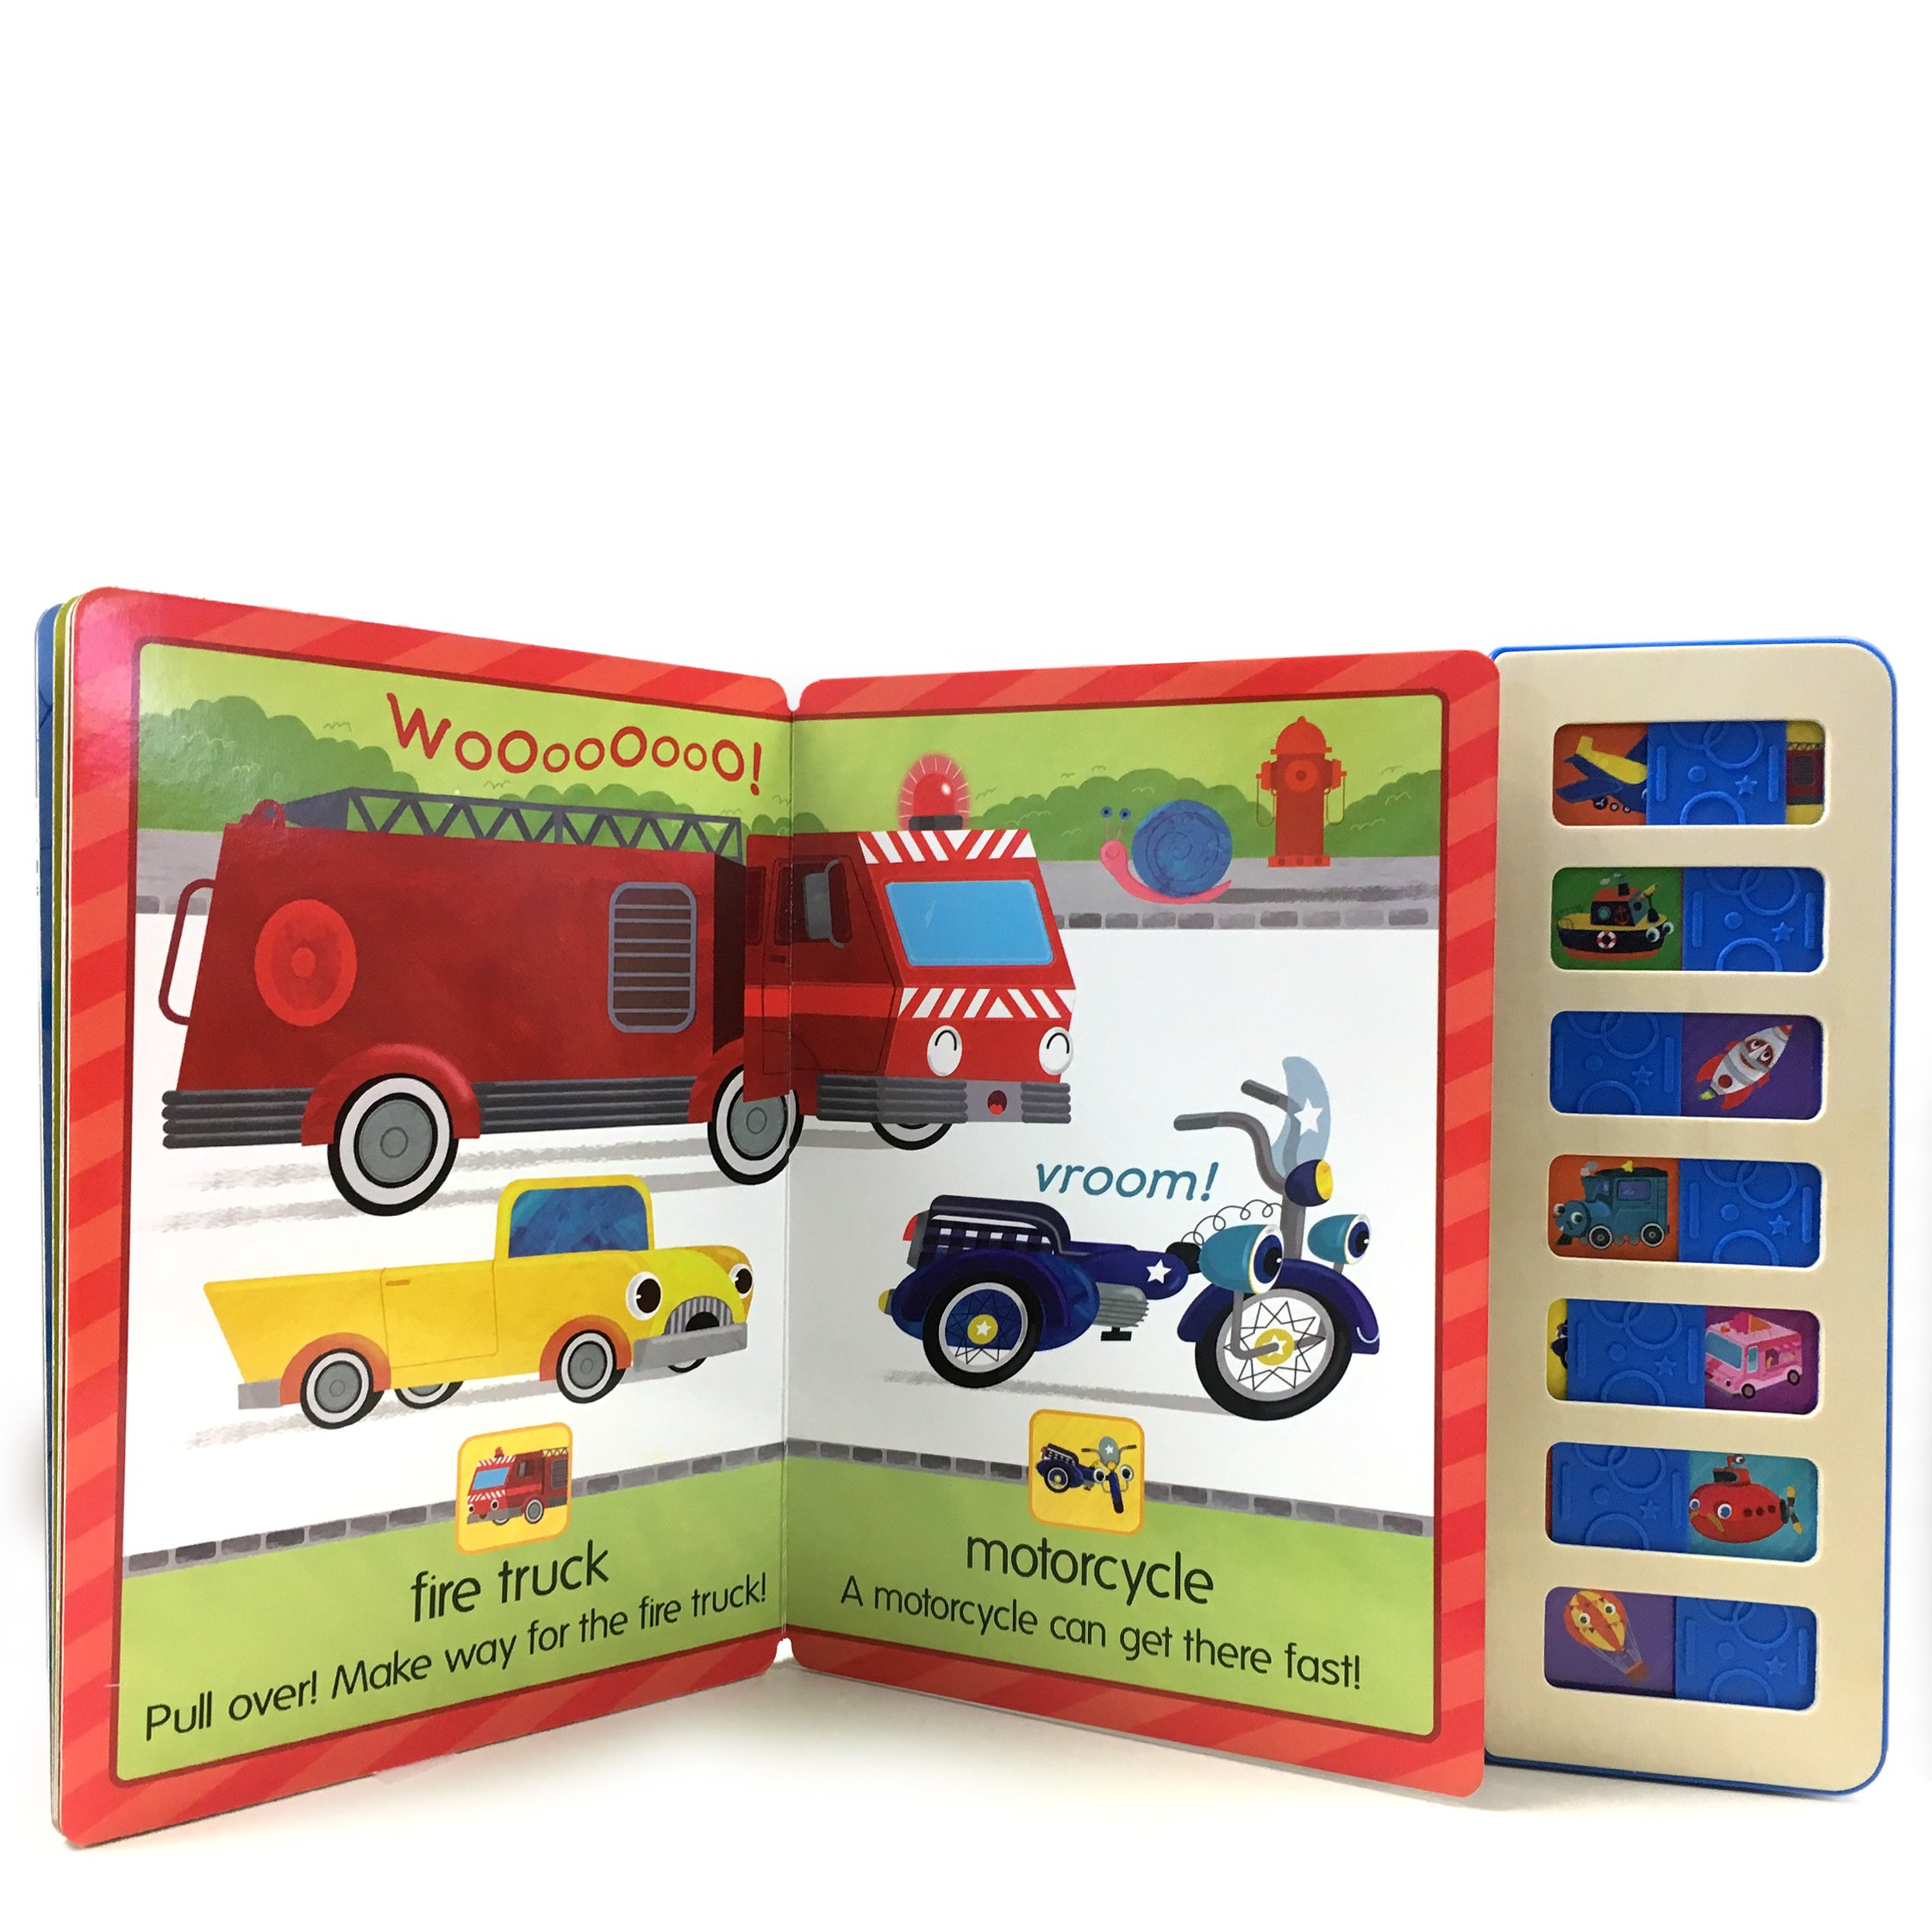 Beep! Honk! Zoom!: Interactive Children's Slide and Sound Book (Slide & Sound)